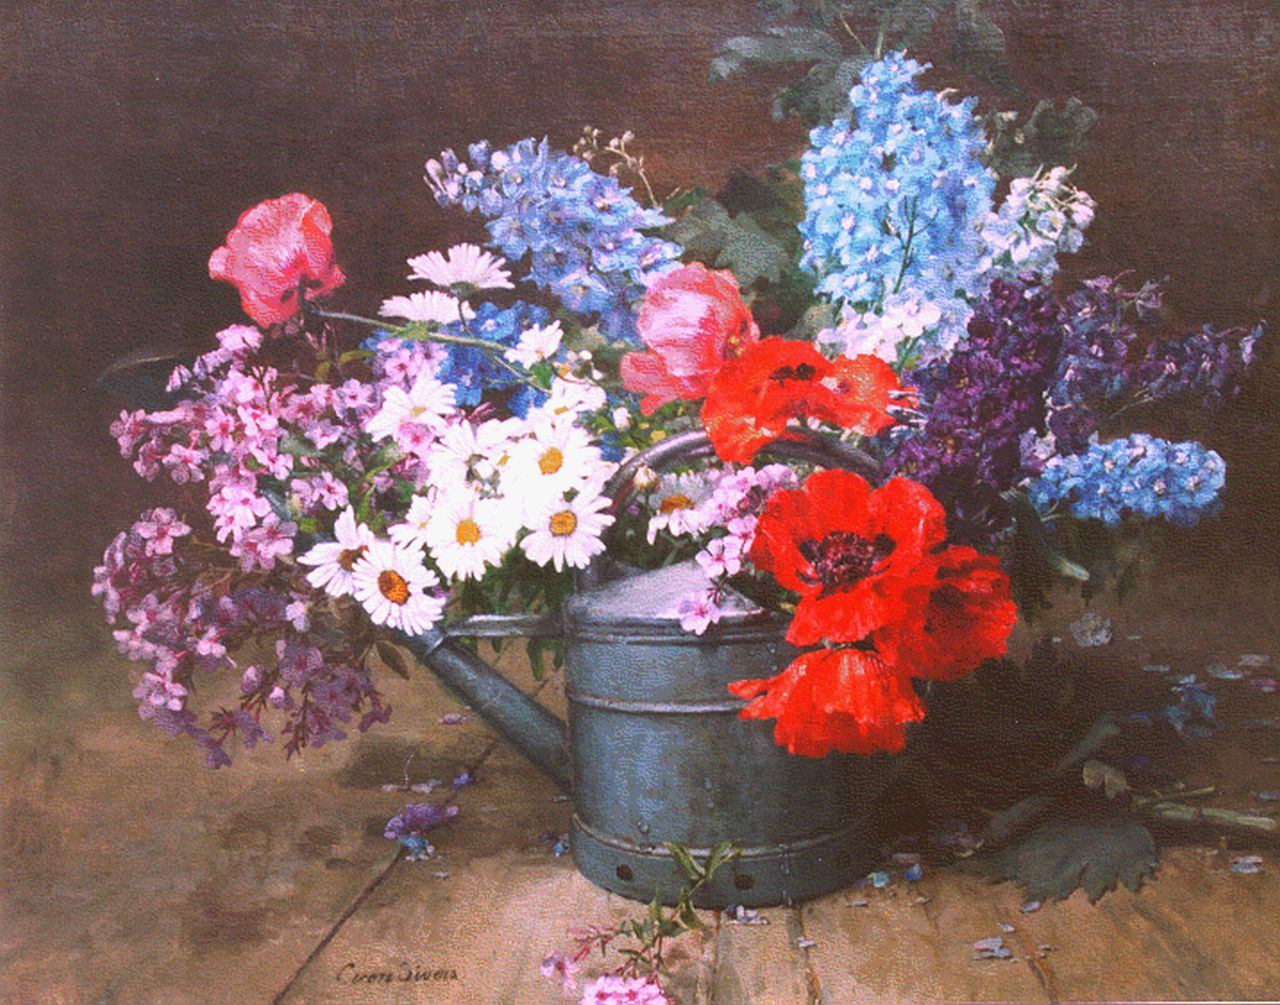 Clara von Sivers-Krüger | A bunch of wildflowers, oil on canvas, 78.5 x 99.0 cm, signed l.l.